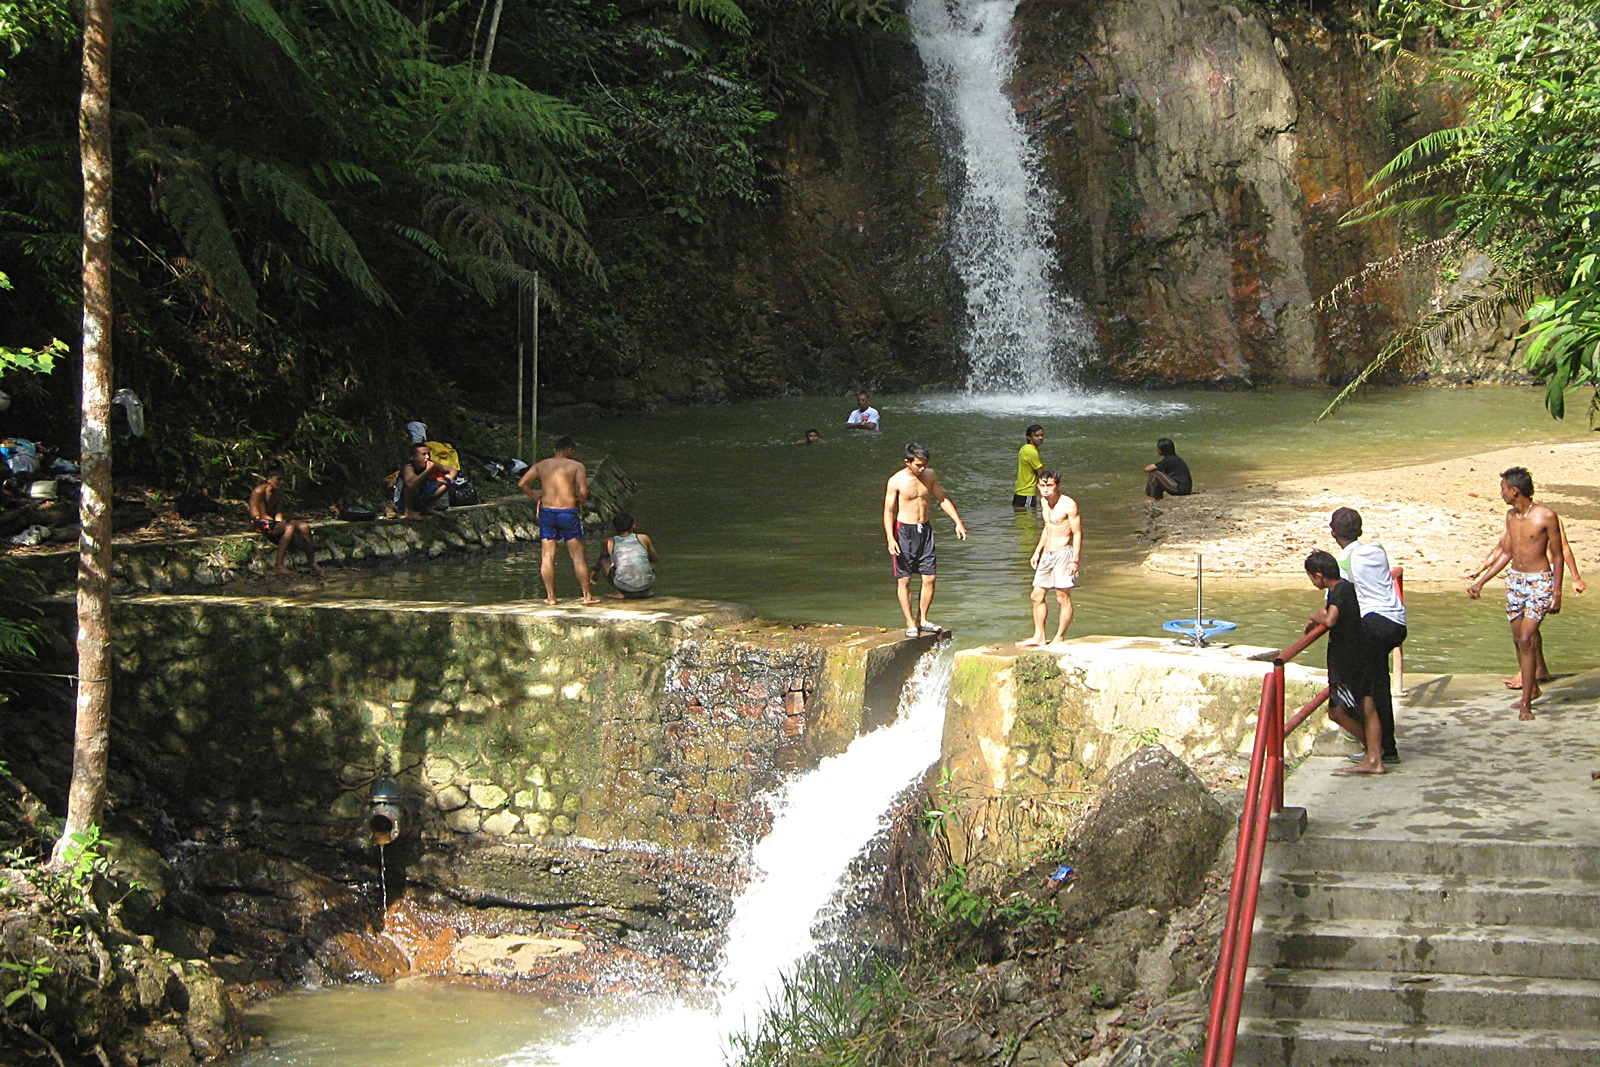 Visit Jeriau Waterfall